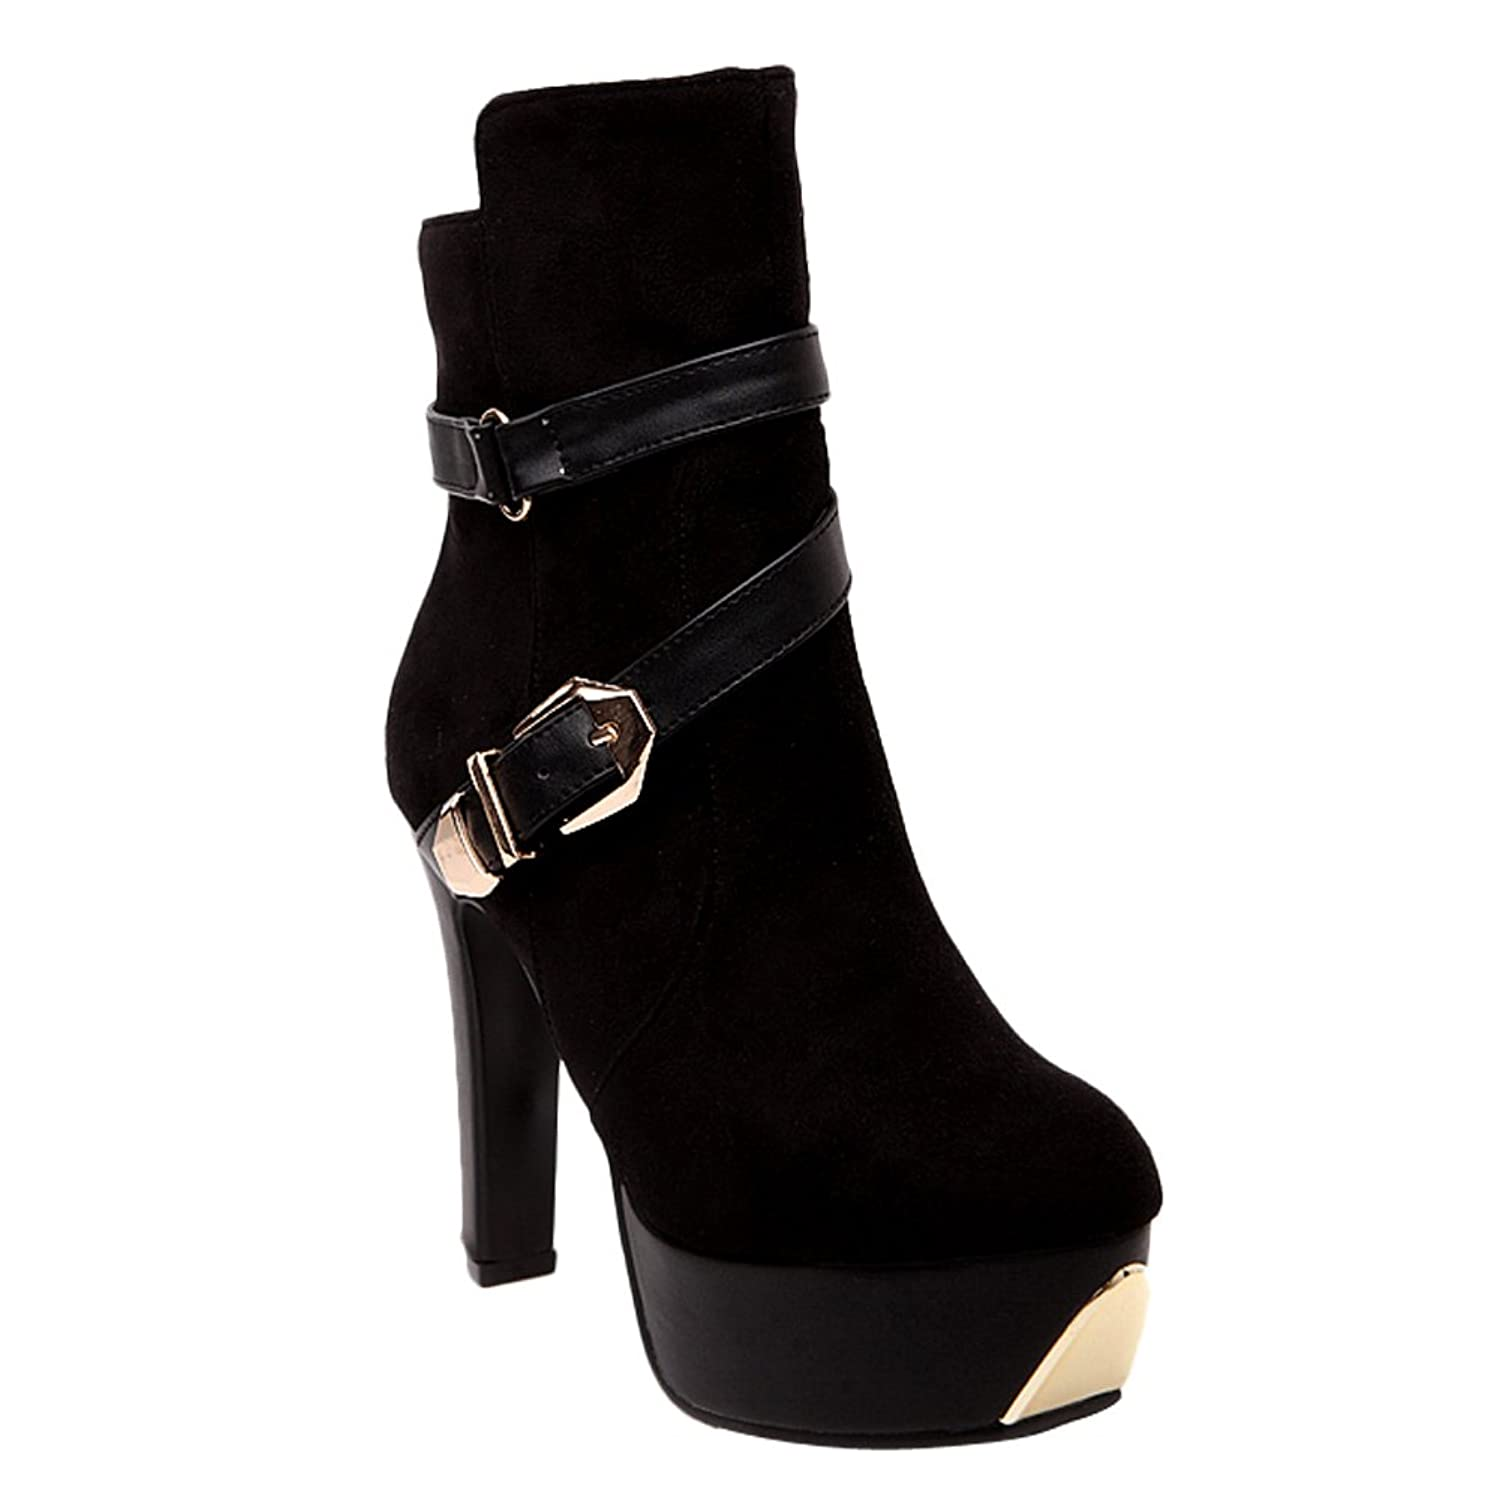 Charm Foot Women's Vintage Strap Buckle Style Platform High Heel Ankle Booties